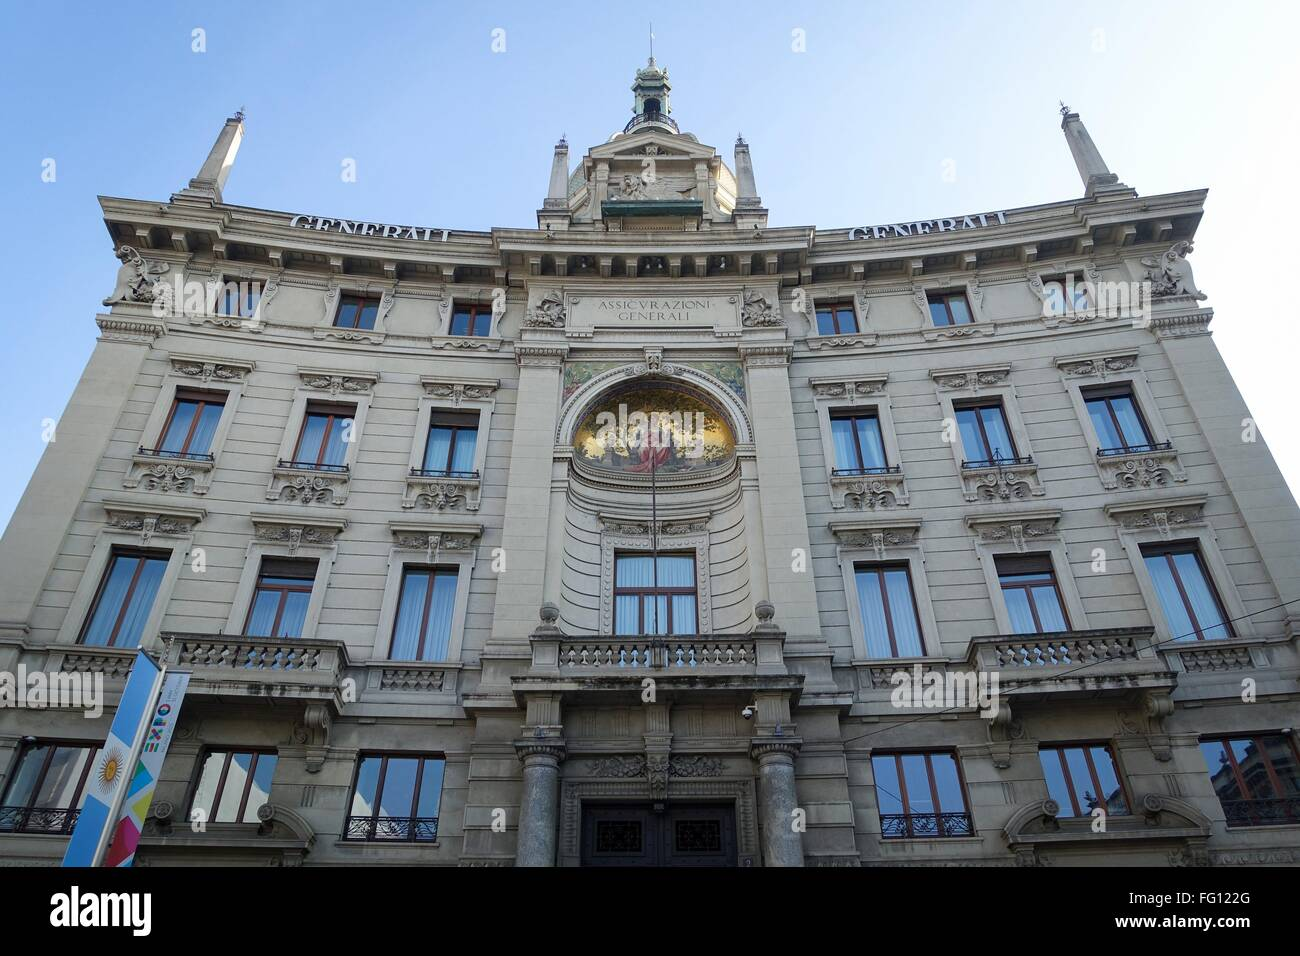 Italy: Headquarters of Generali Group in inner city of Milan. Photo from 31. January 2016. Stock Photo